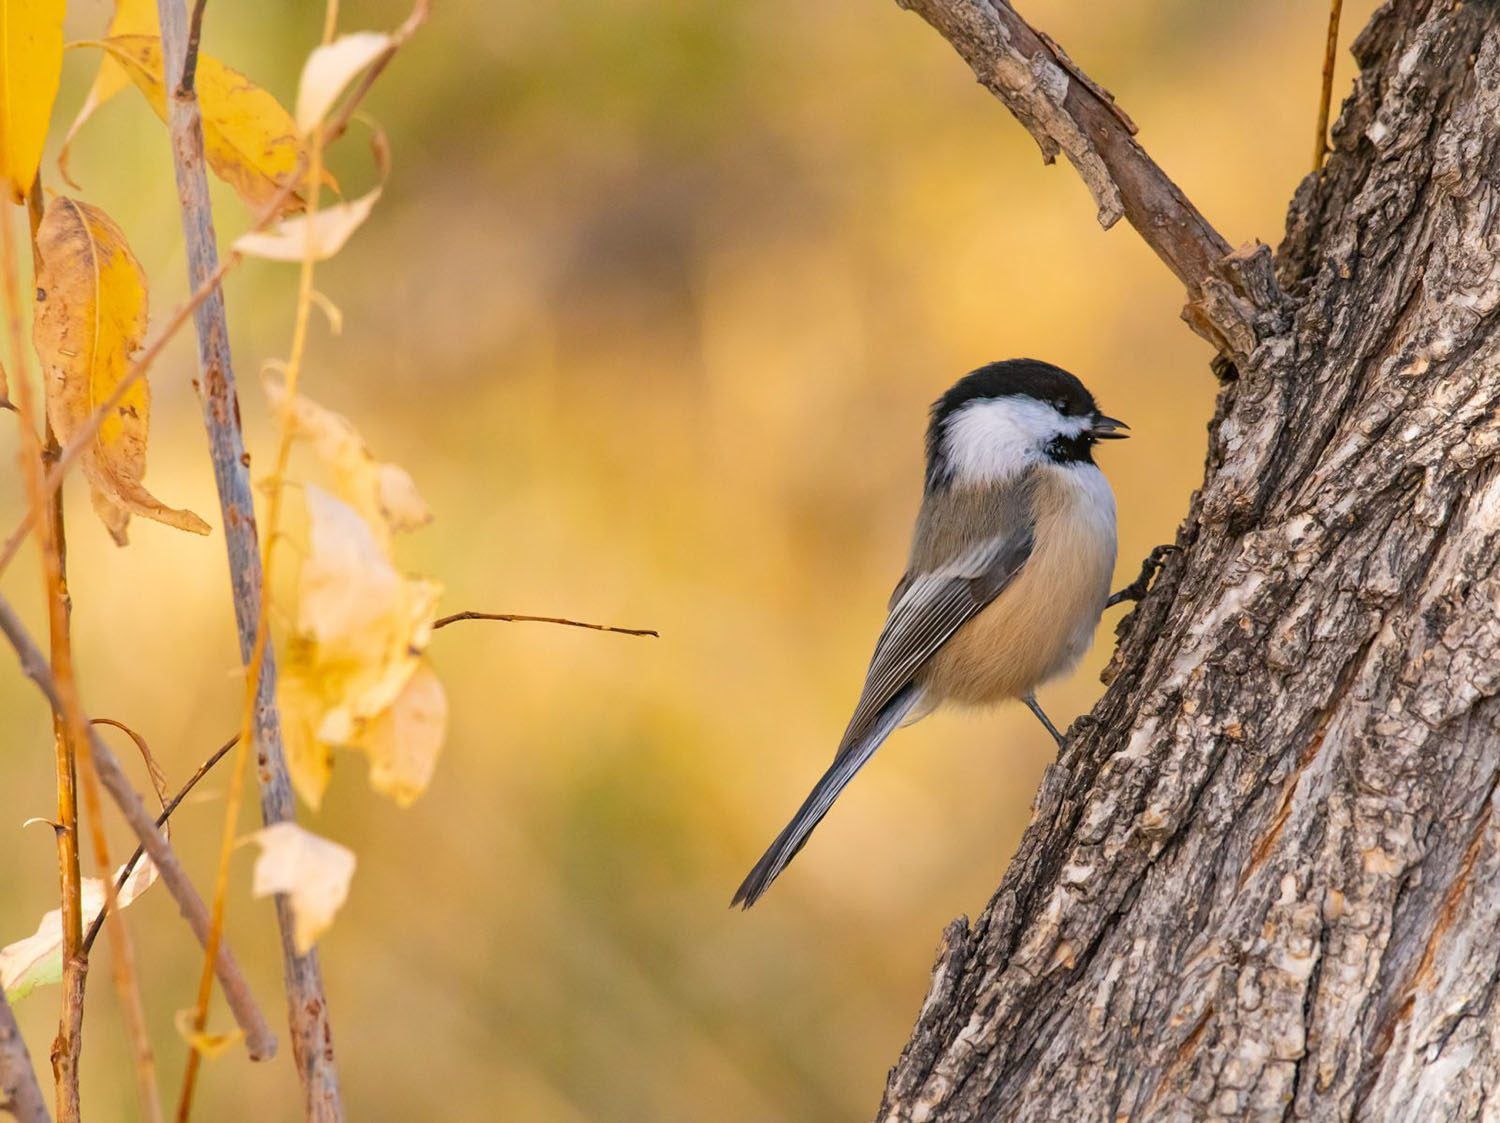 Black-capped Chickadee by Malese